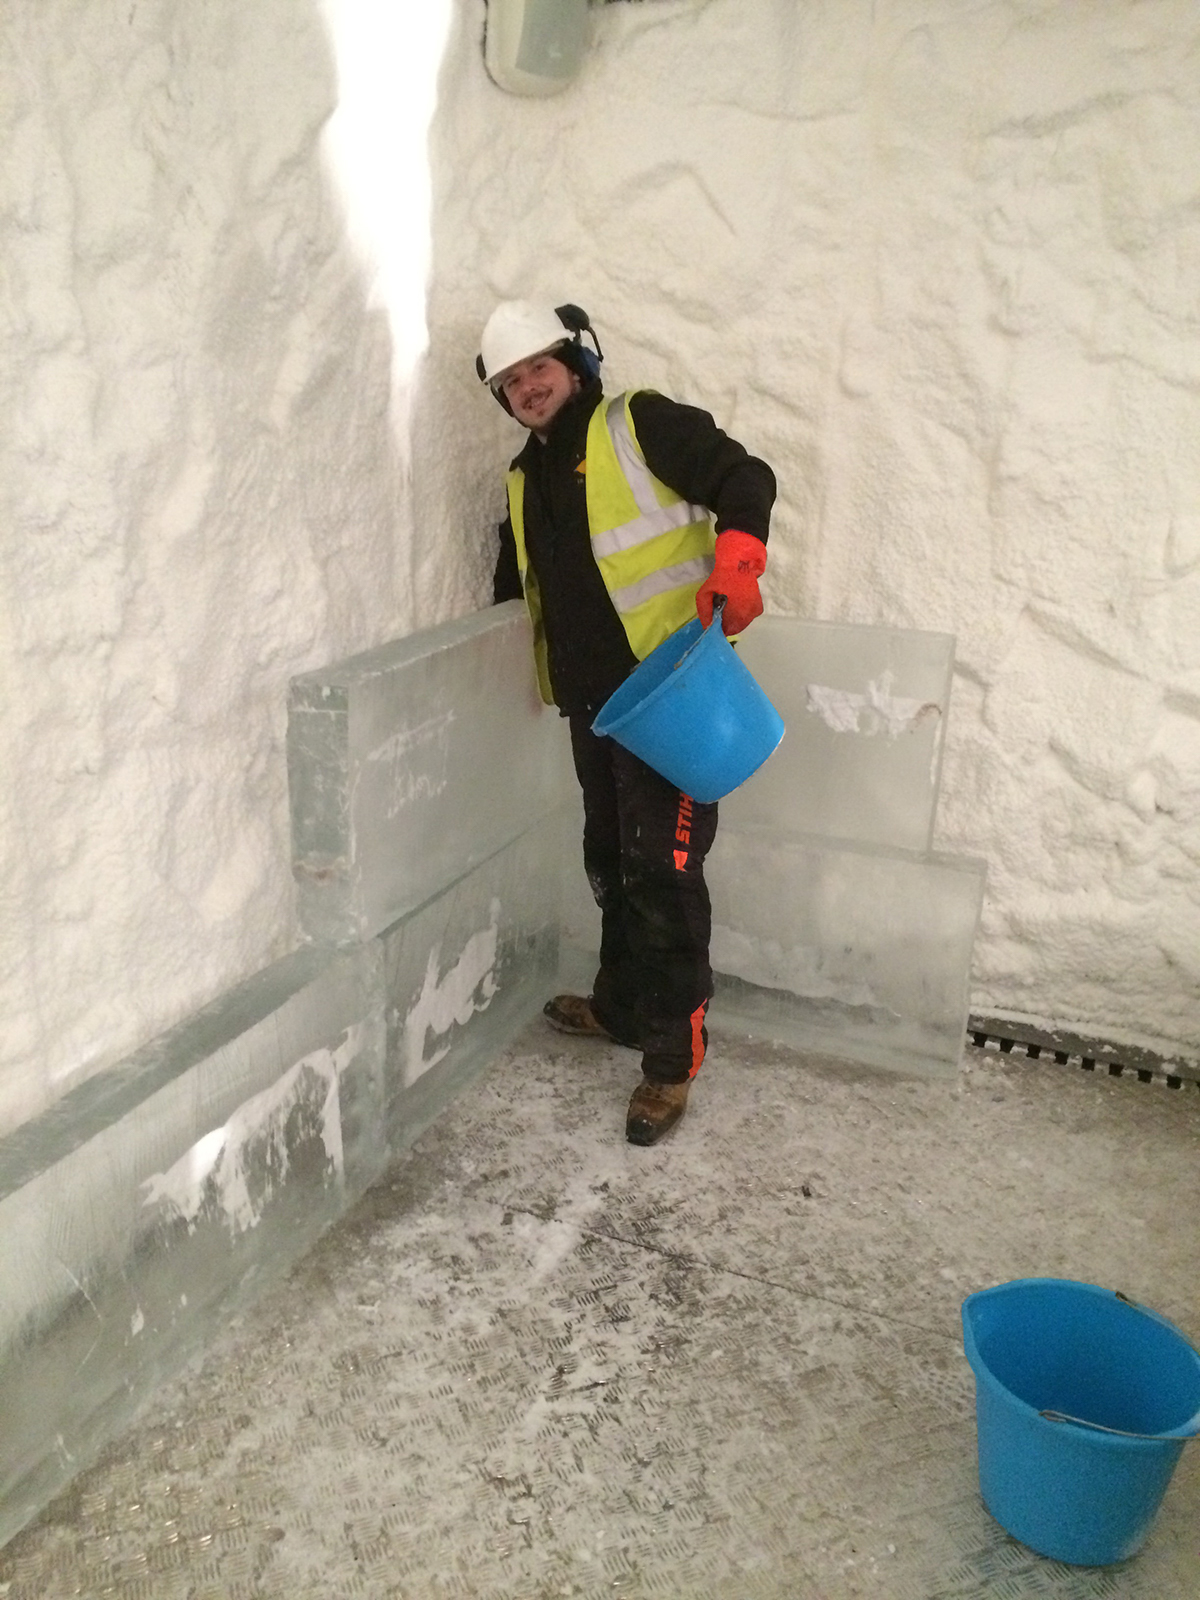 James making the ice wall